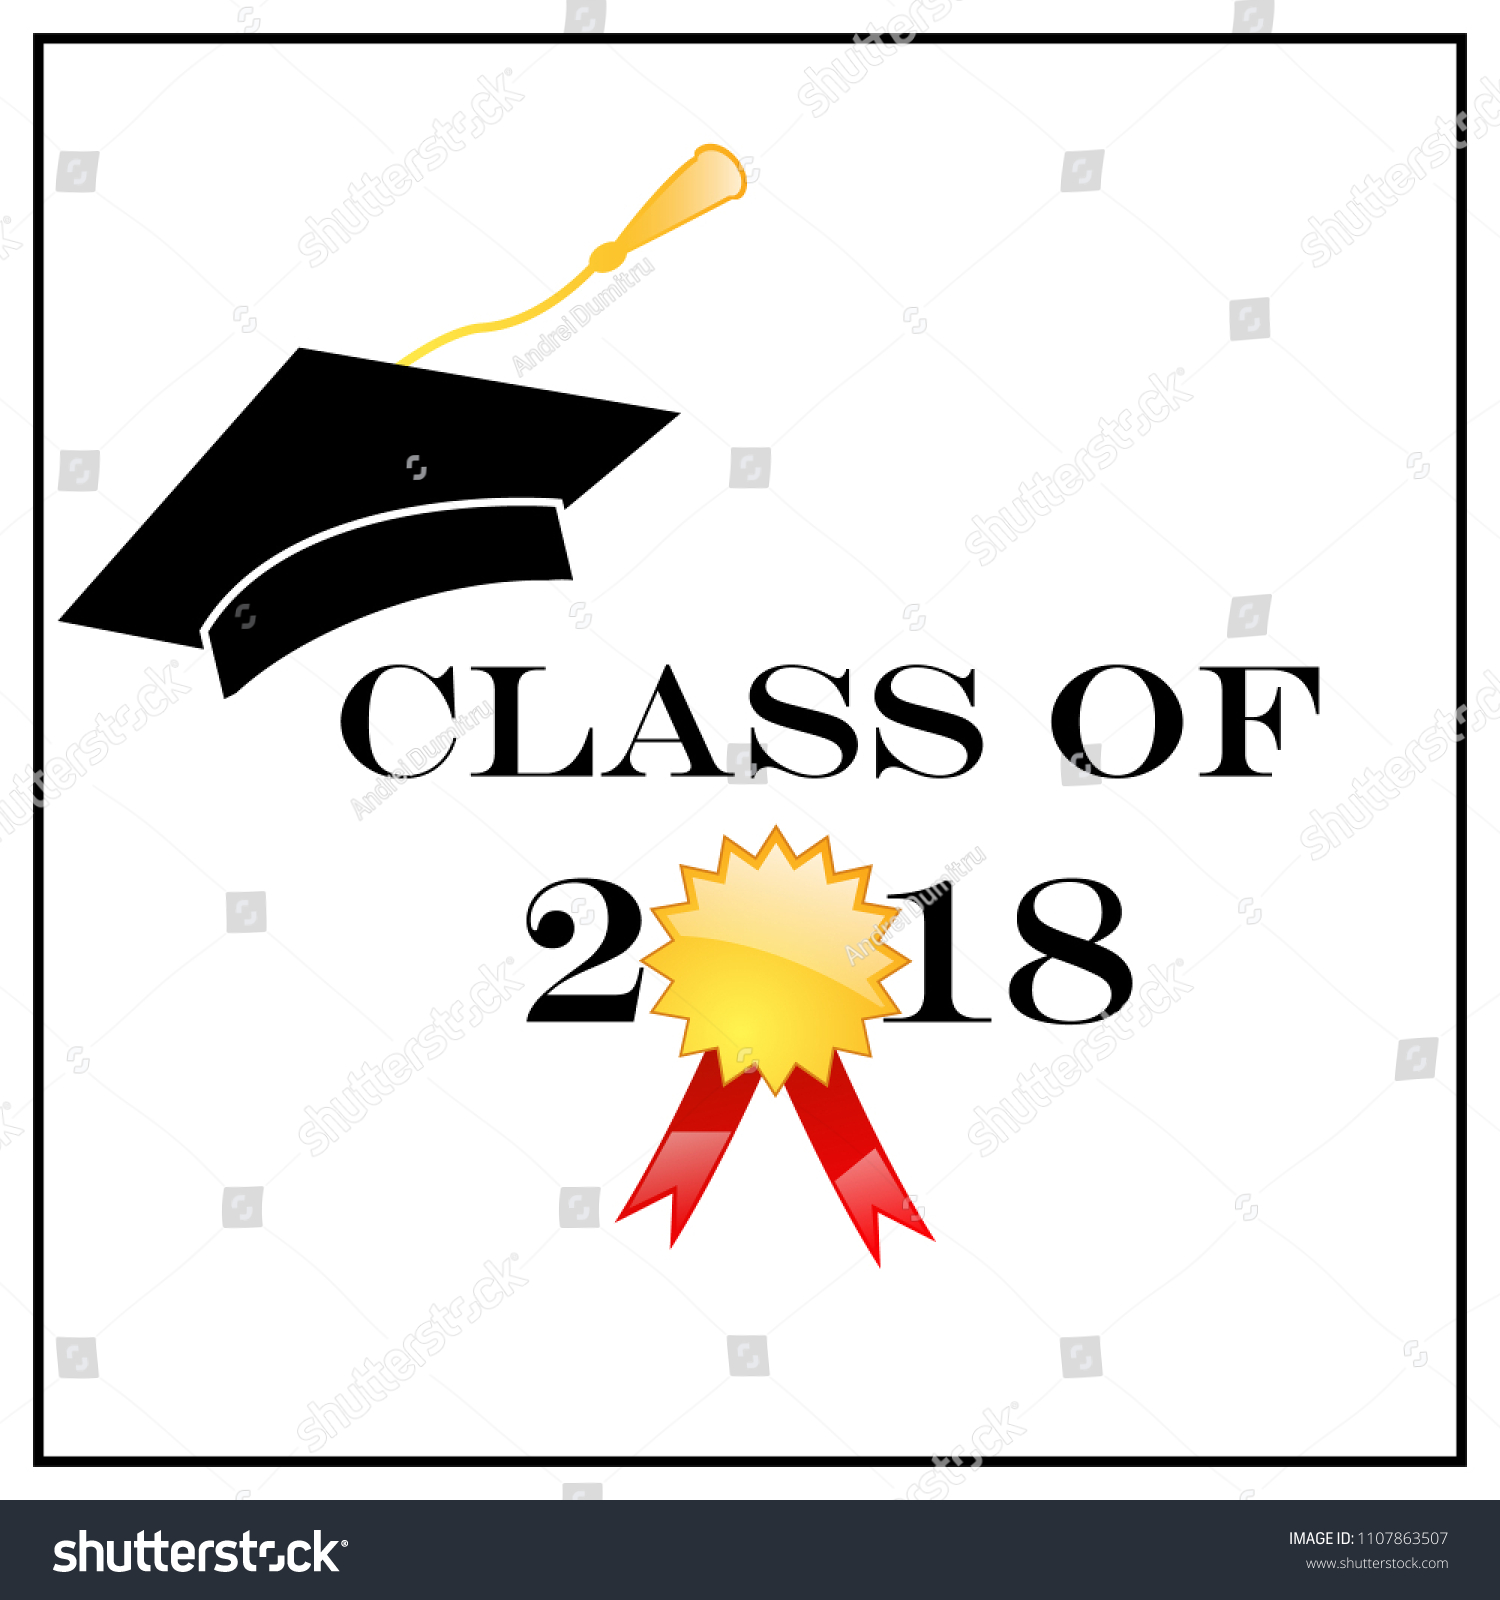 Graduation Class 2018 Greeting Cards Vector Stock Vector 1107863507